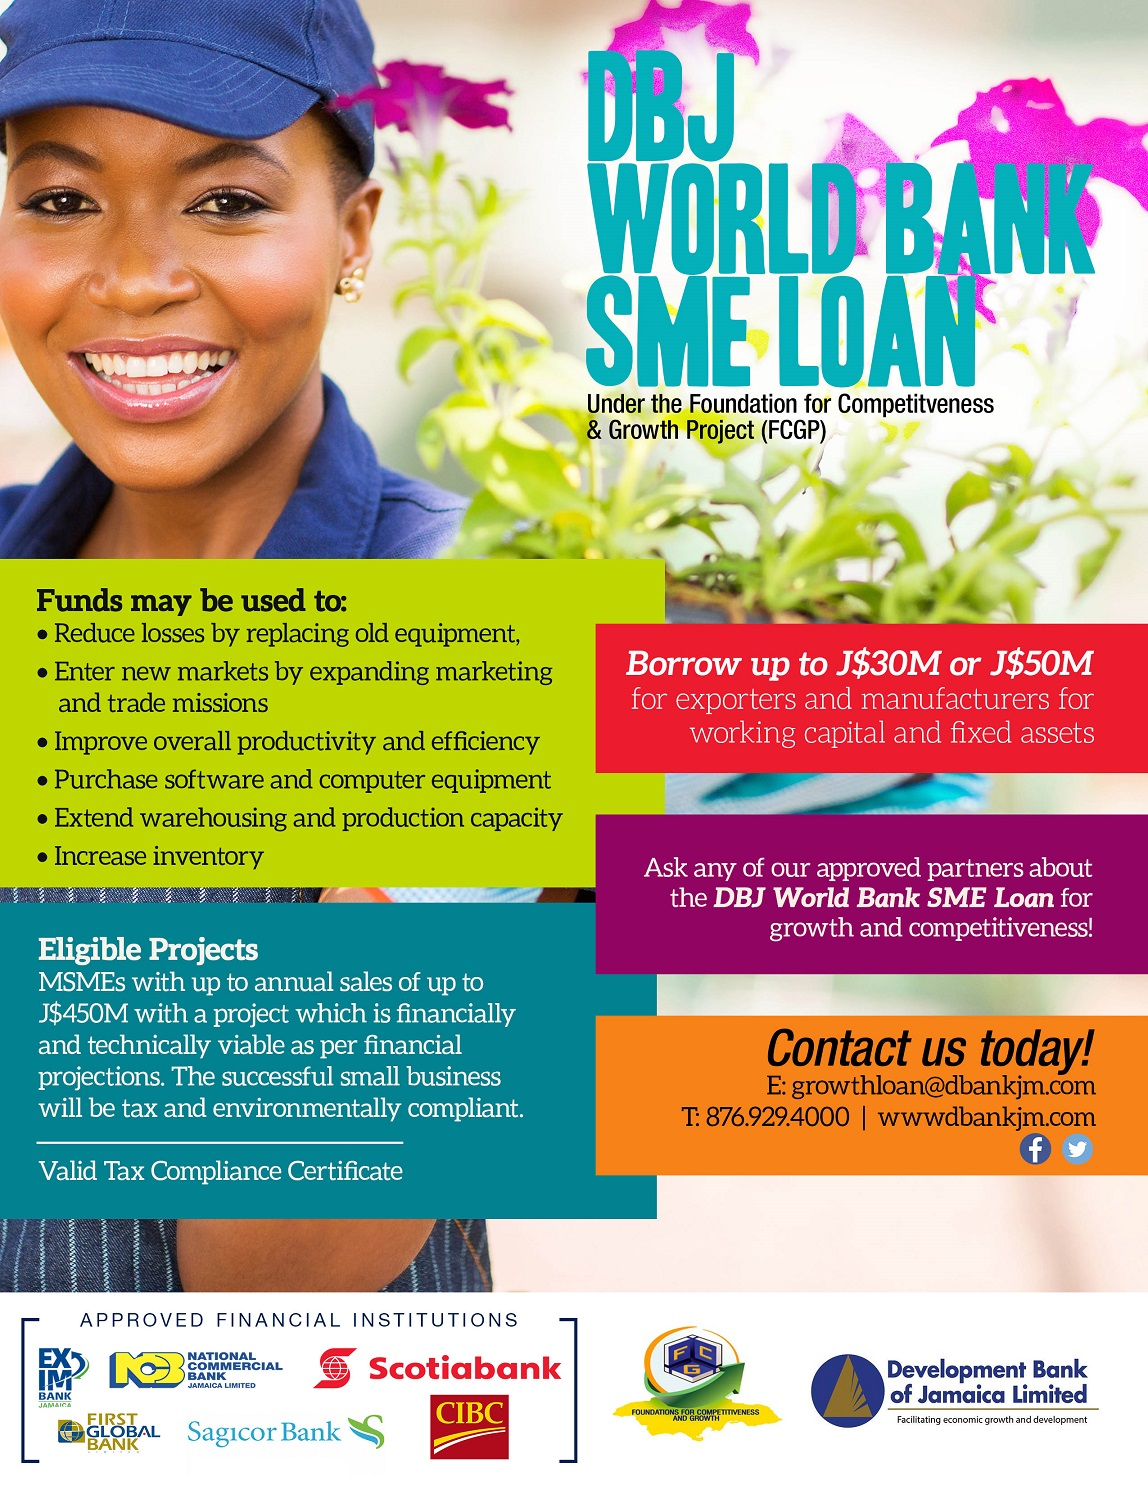 DBJ World Bank SME Loan